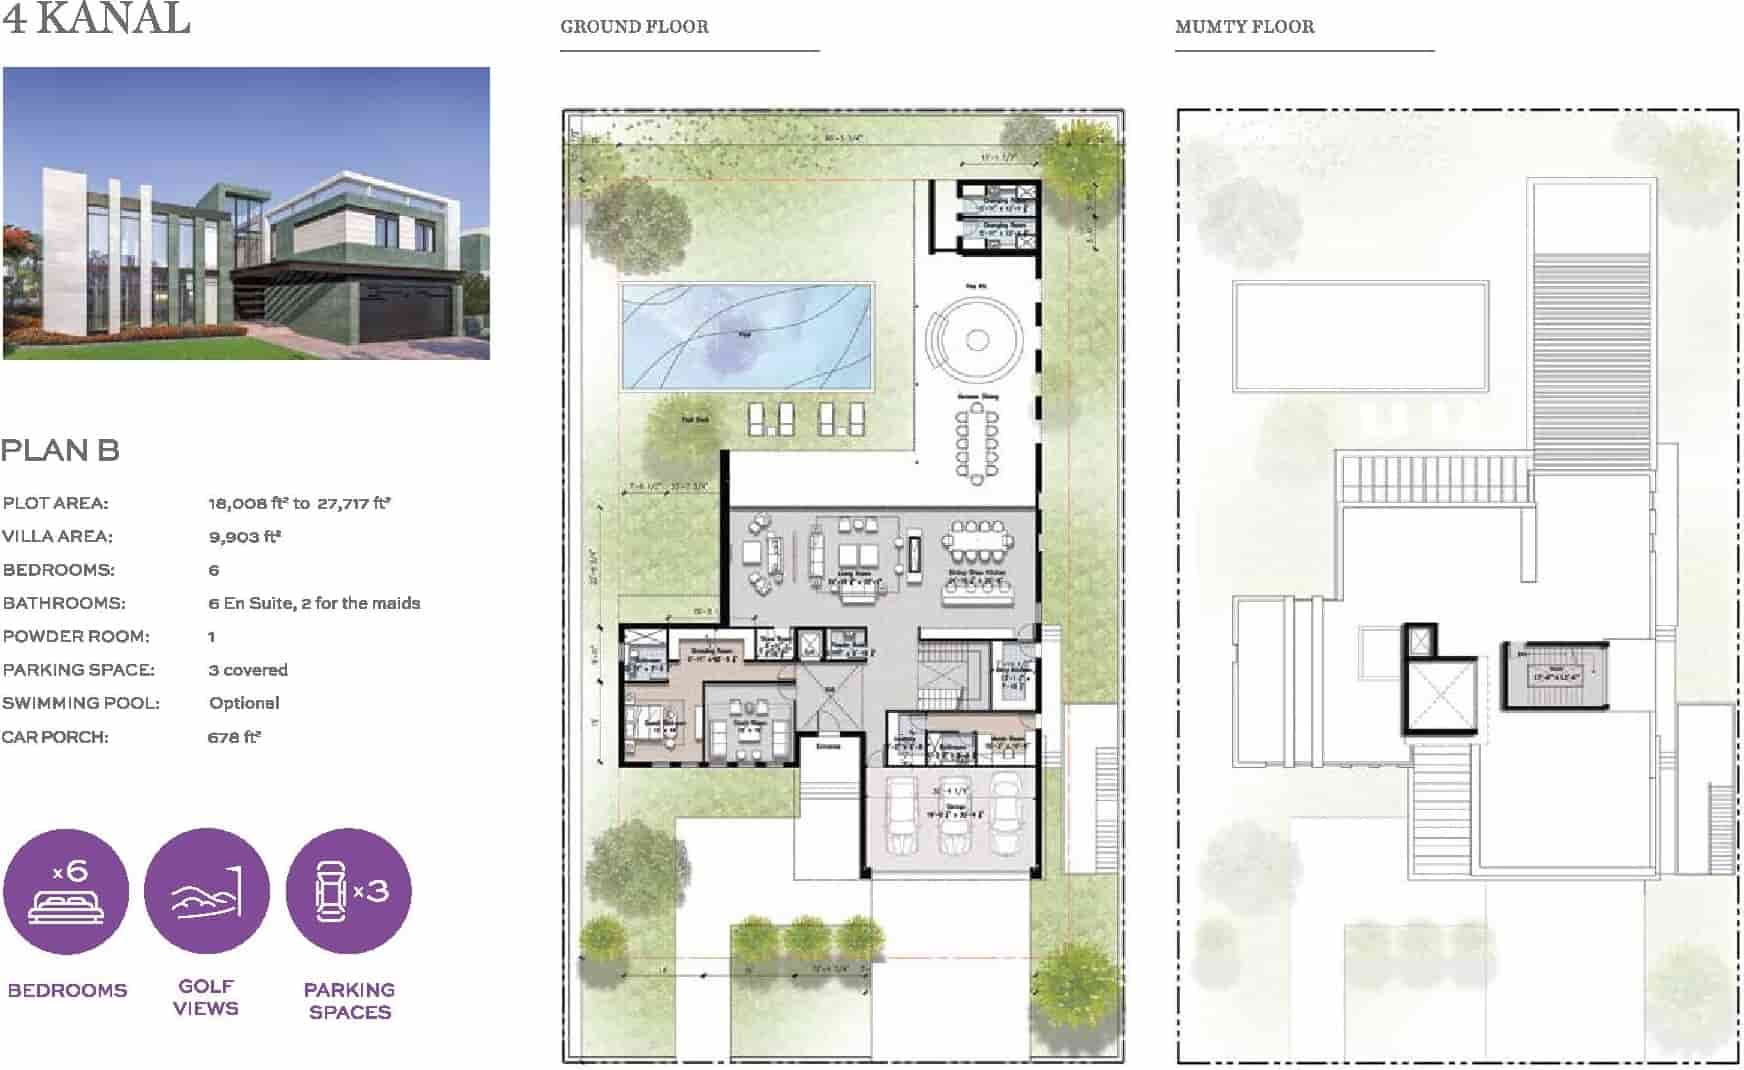 Eighteen 4 Kanal Villa Layout Plan B